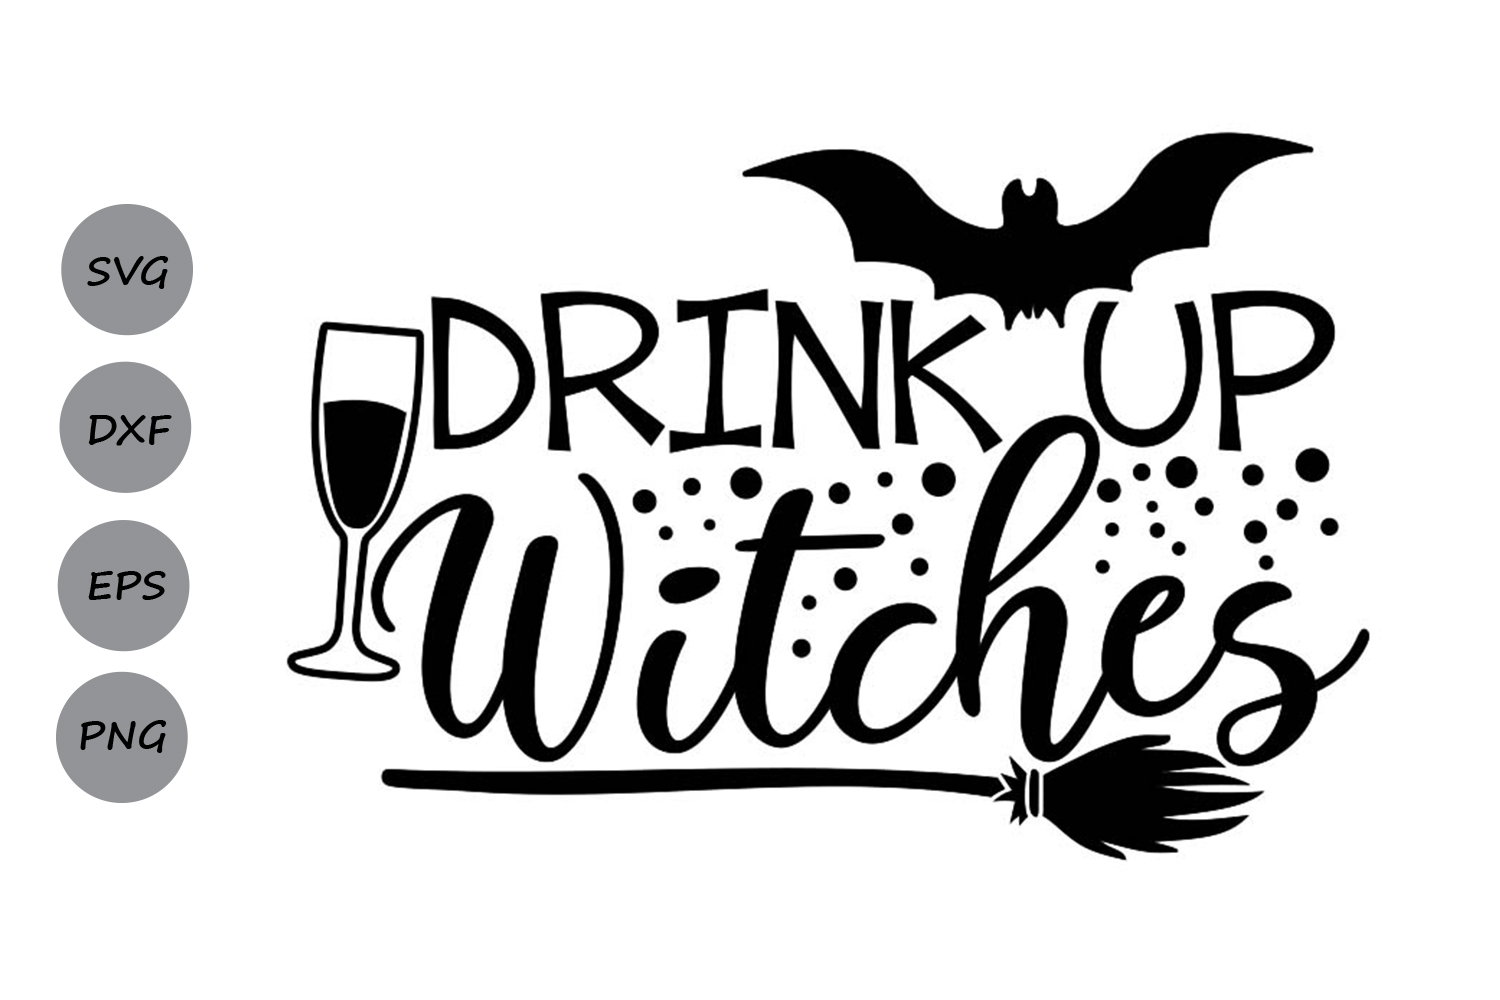 Download Free Drink Up Witches Graphic By Cosmosfineart Creative Fabrica for Cricut Explore, Silhouette and other cutting machines.